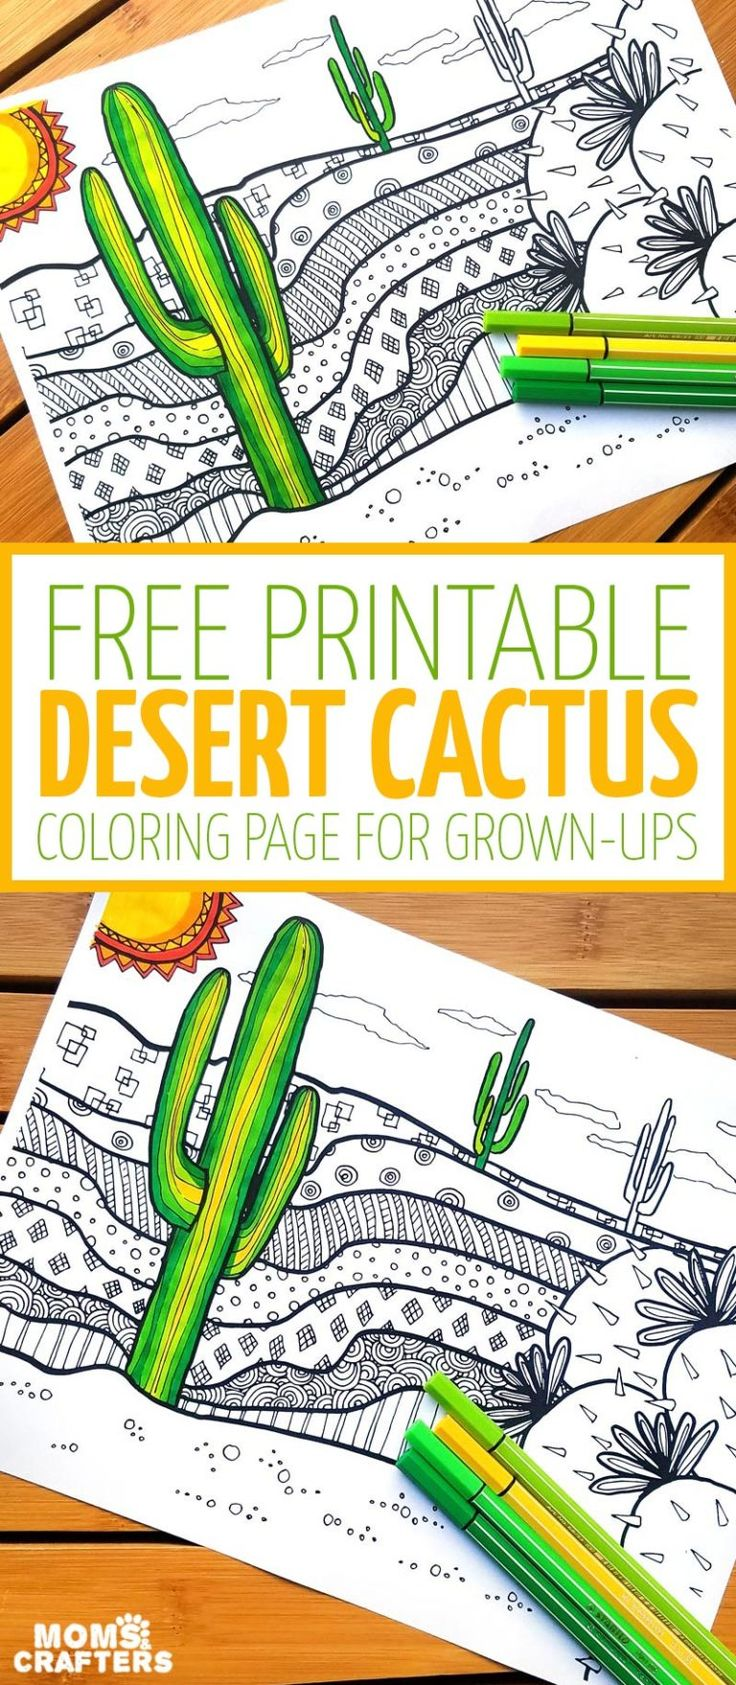 Free Cactus Coloring Page for Adults